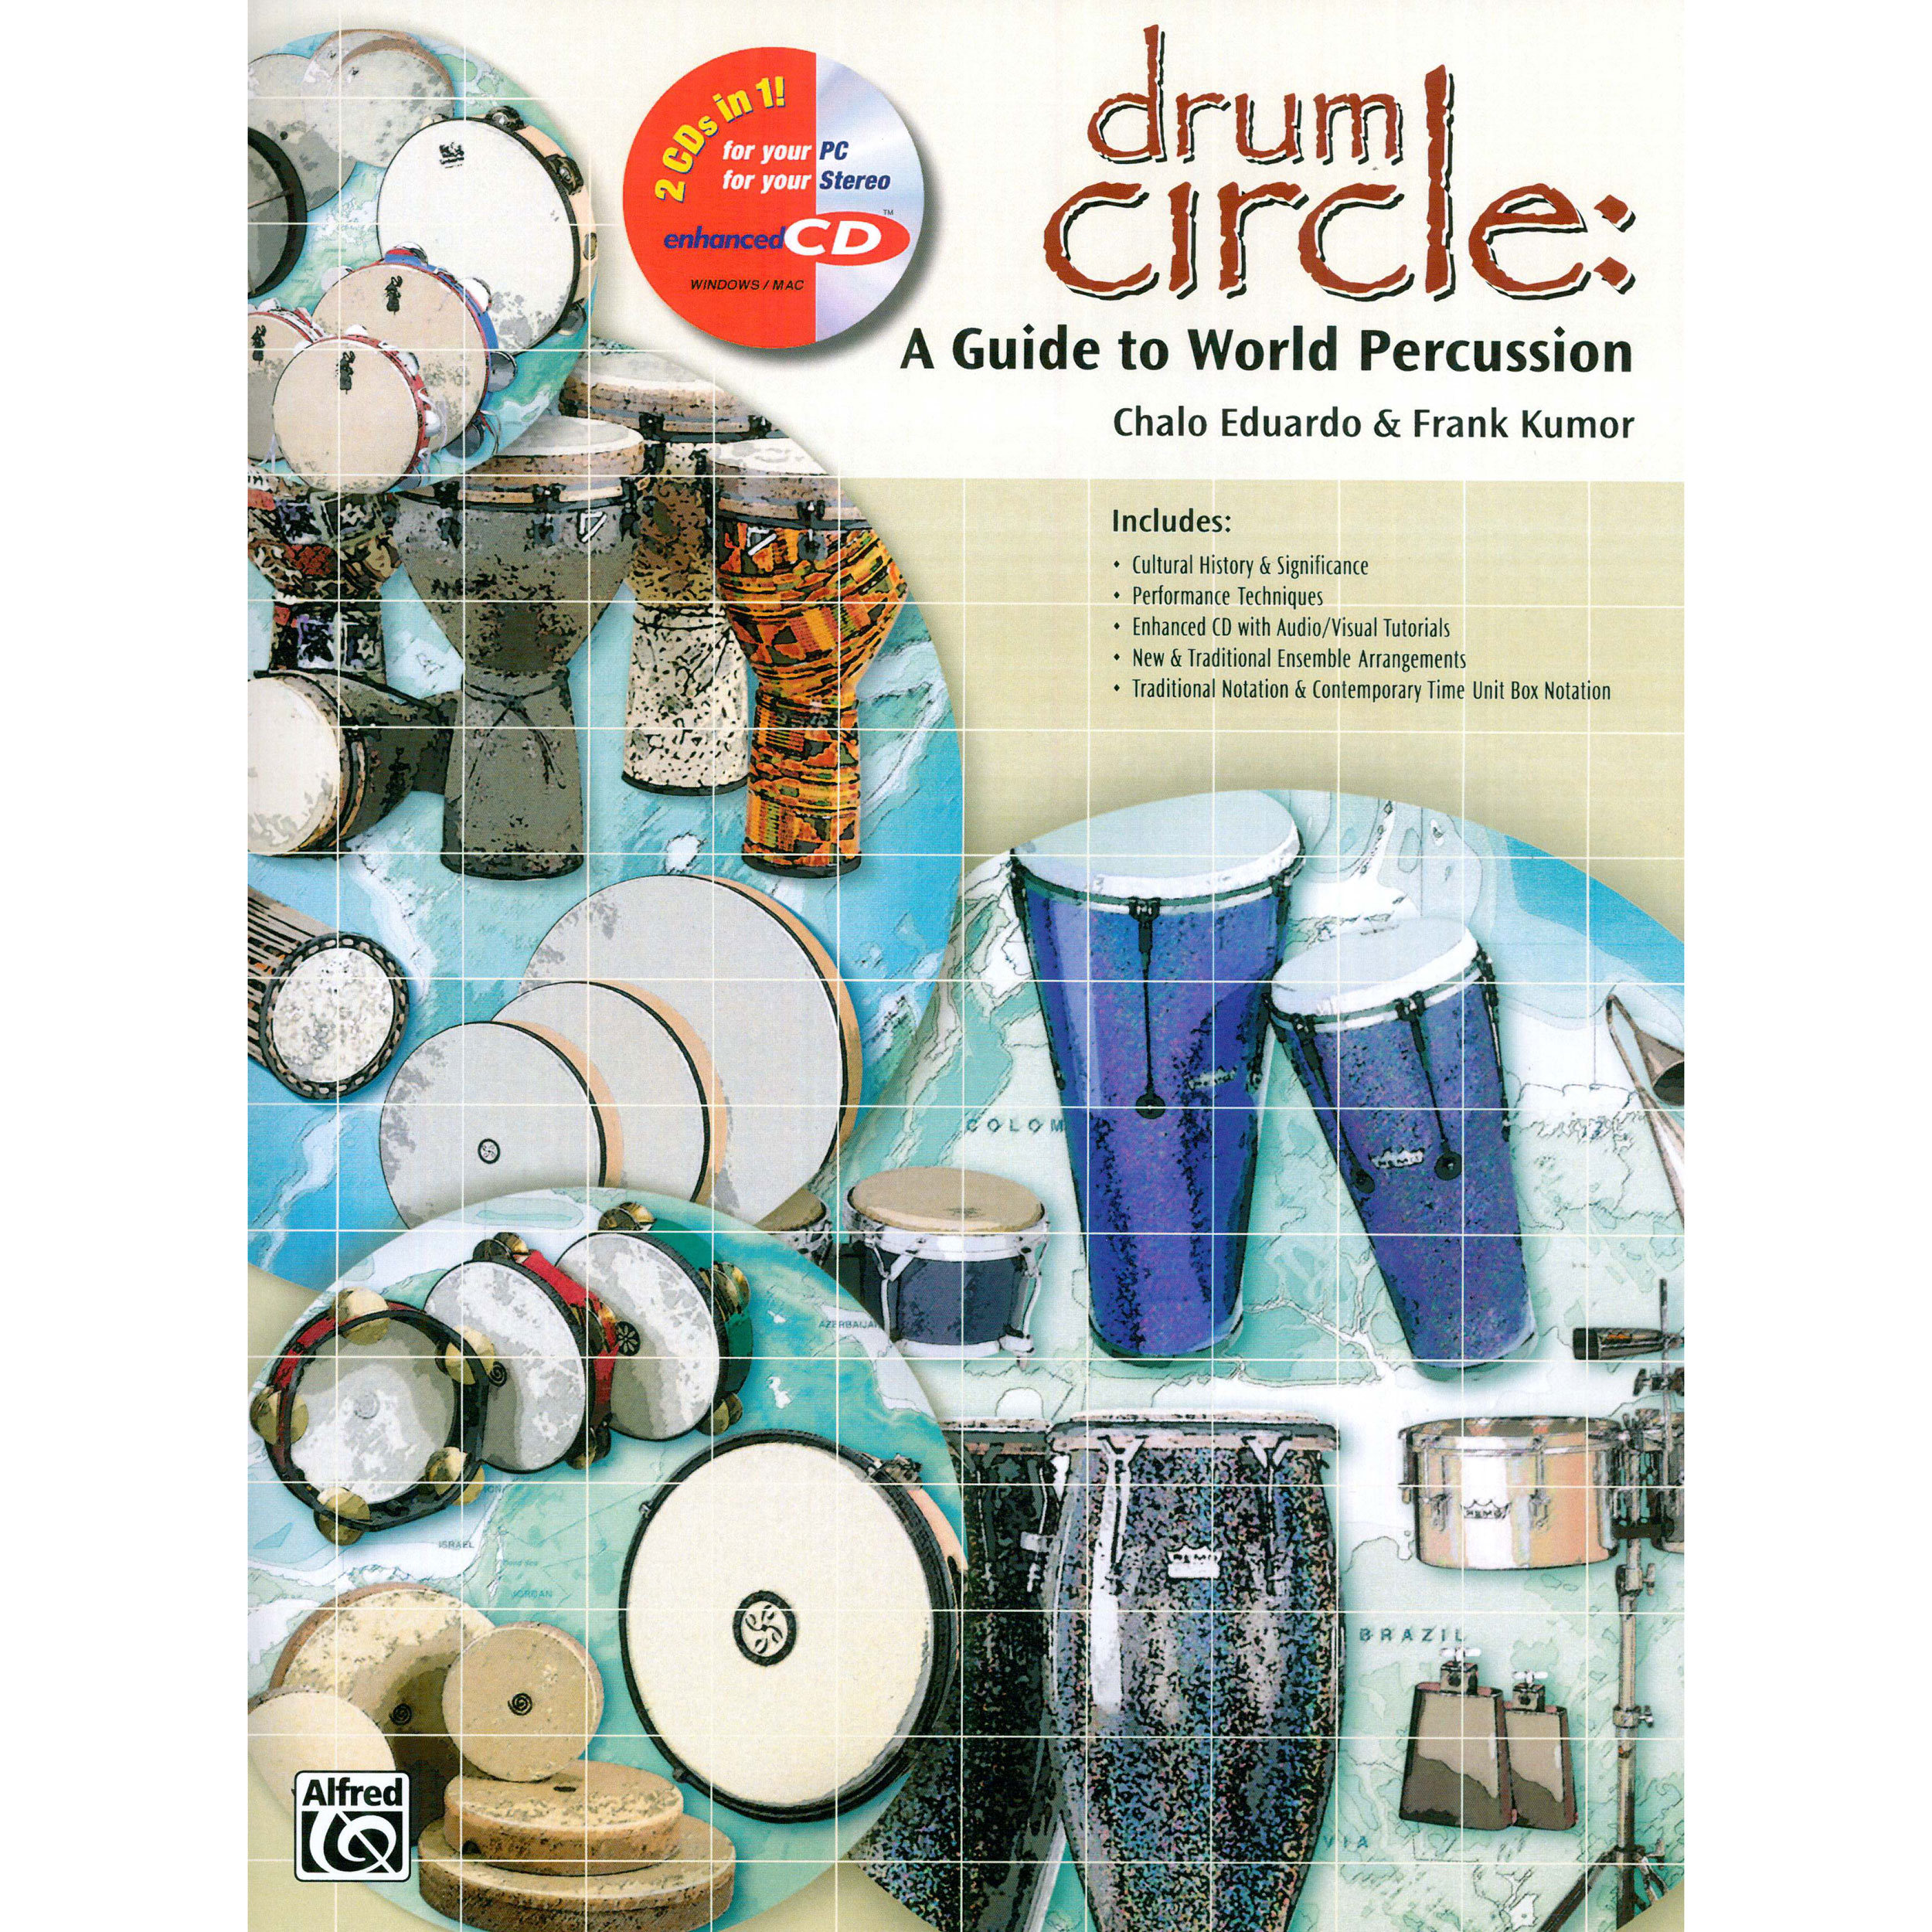 Drum Circle: A Guide to World Percussion by Chalo Eduardo and Frank Kumor